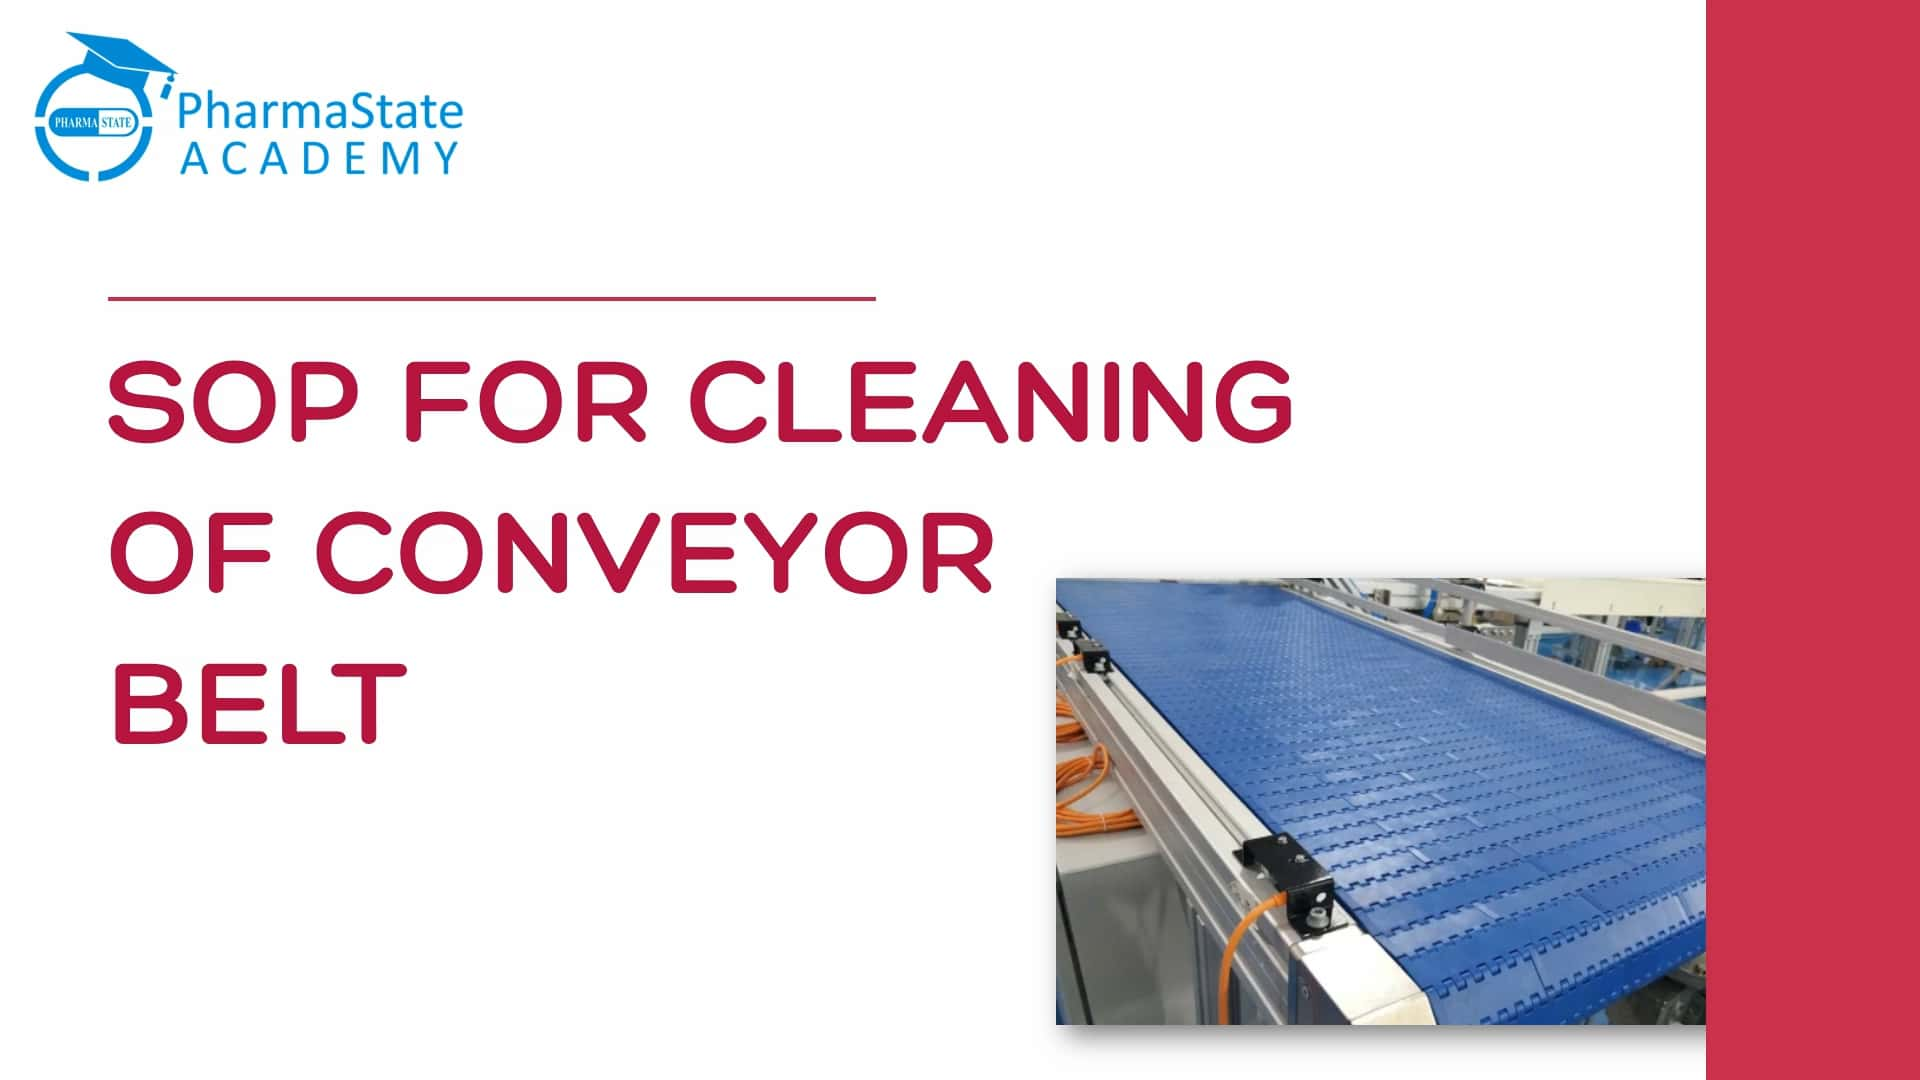 SOP For Cleaning of Conveyor Belt